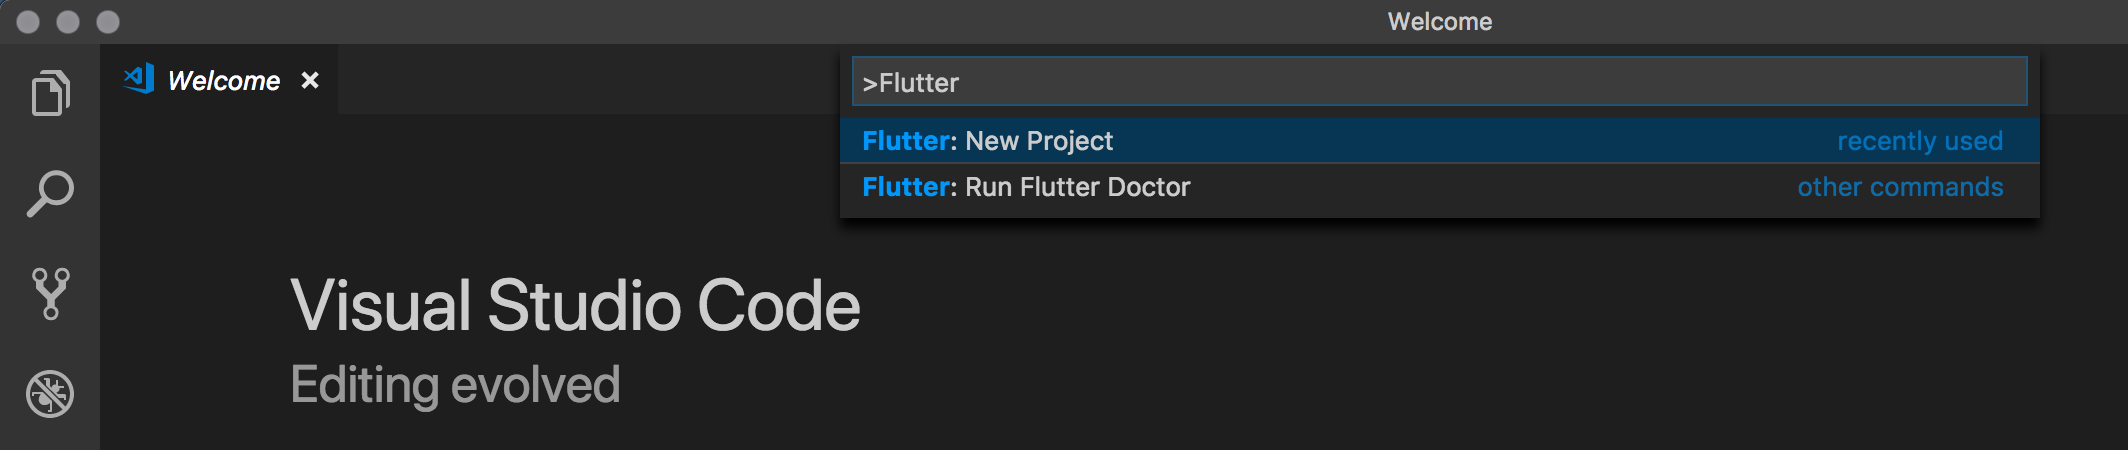 Getting Started with Flutter | raywenderlich com